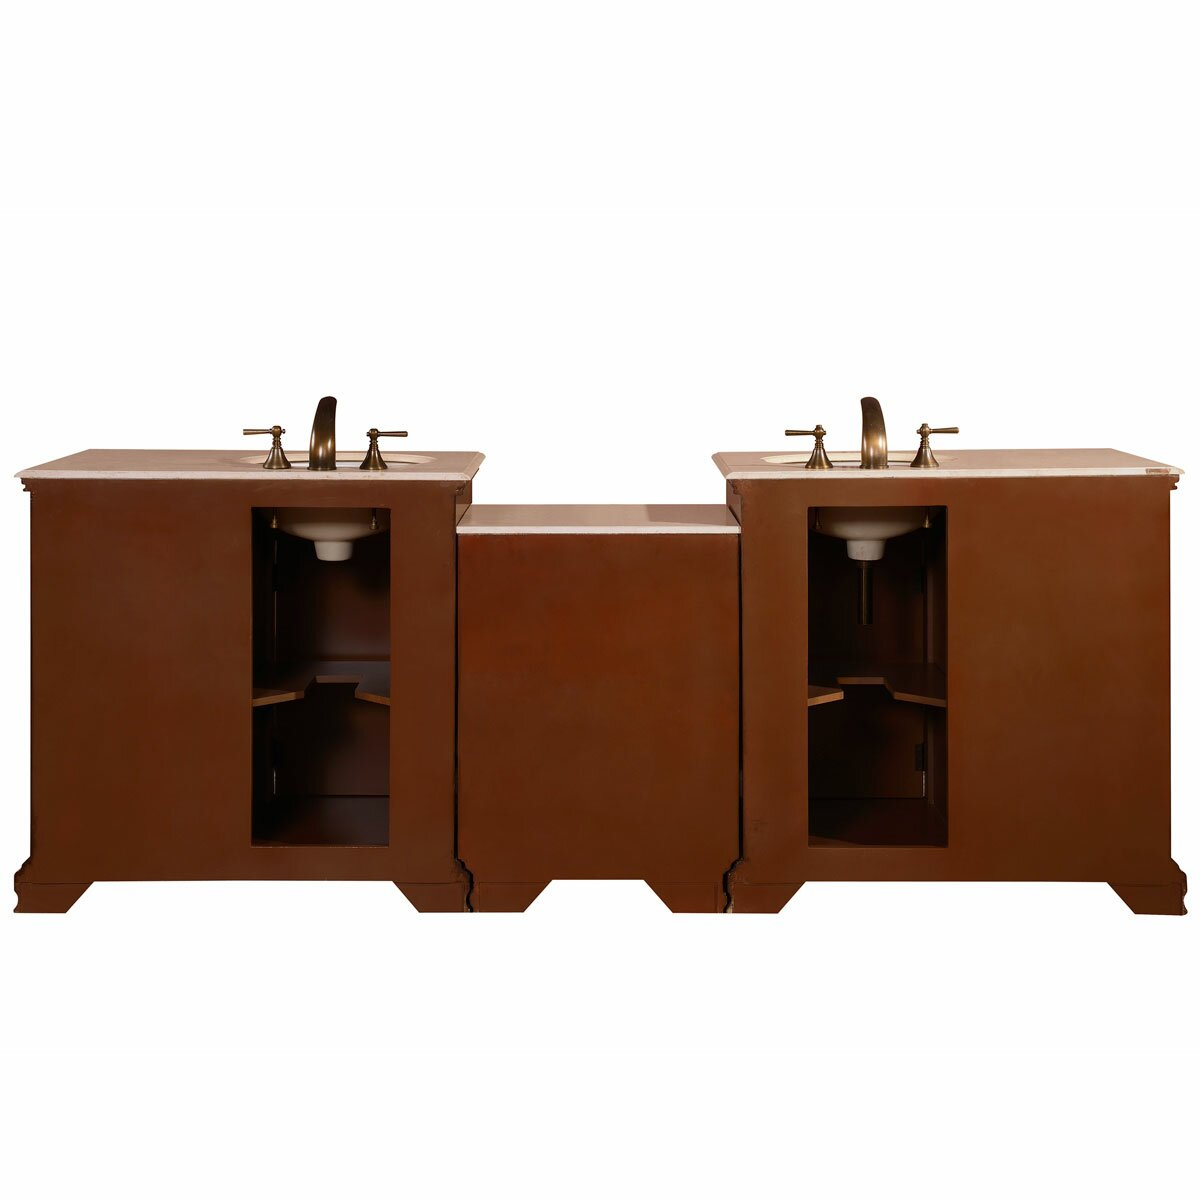 Silkroad exclusive 92 5 double lavatory sink cabinet bathroom vanity set reviews wayfair - Double sink bathroom vanity with hutch ...